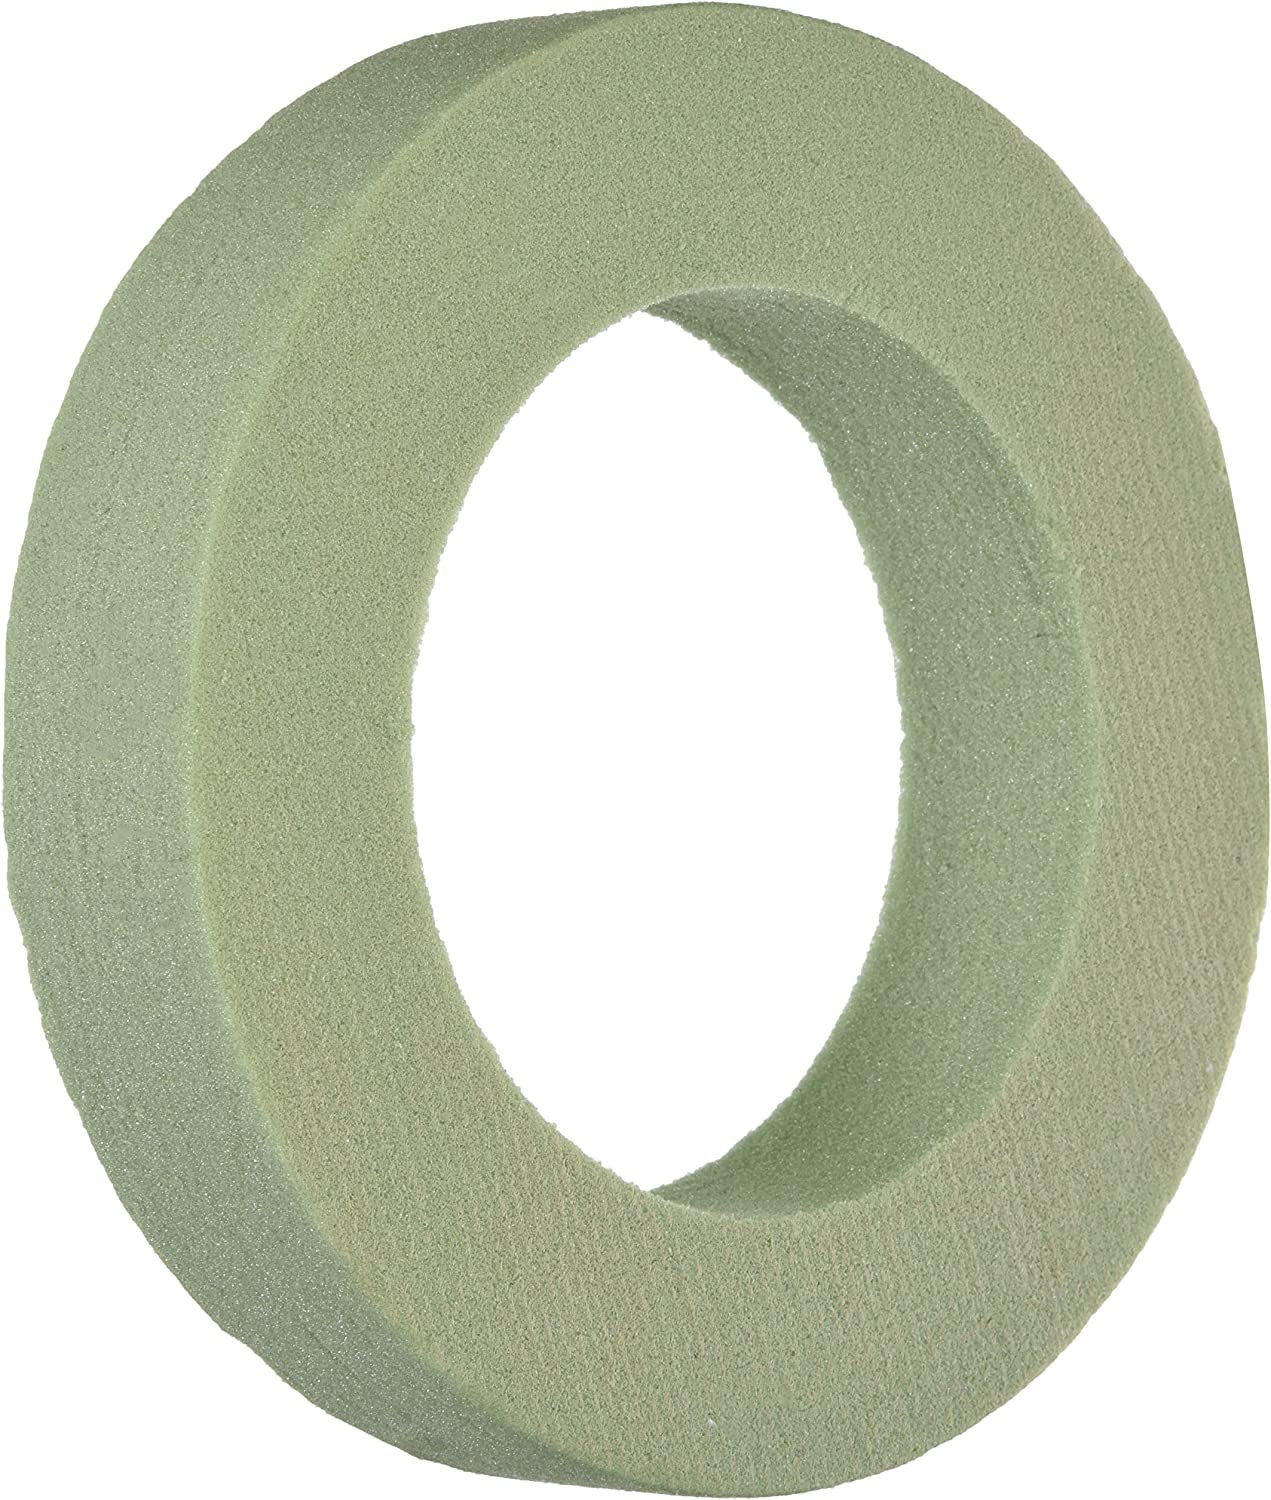 Dry a sec Floral Green Foam Ring for Wreath Design 7.9 in x 1.5 Inch